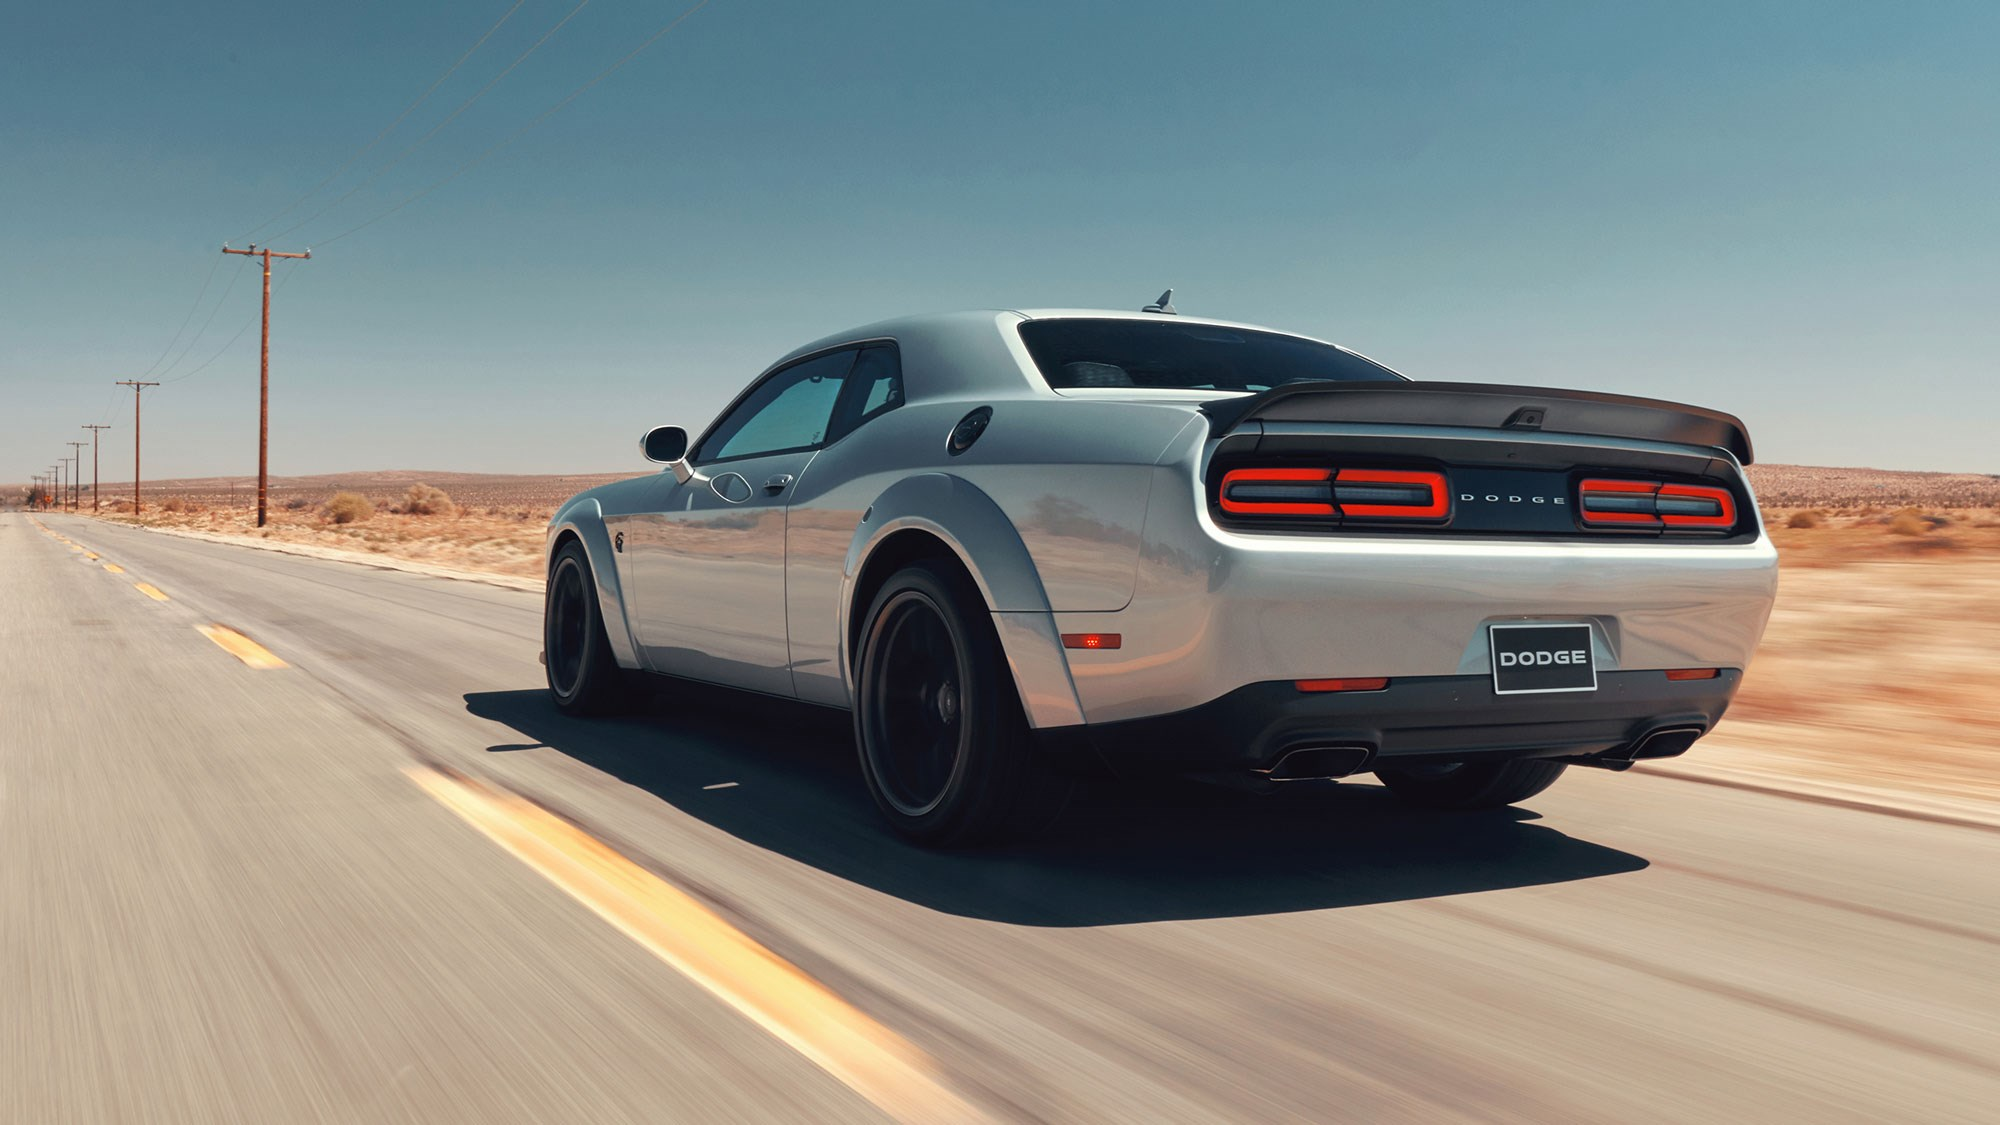 Meet The 2019 Dodge Challenger Srt Hellcat Redeye Widebody Car